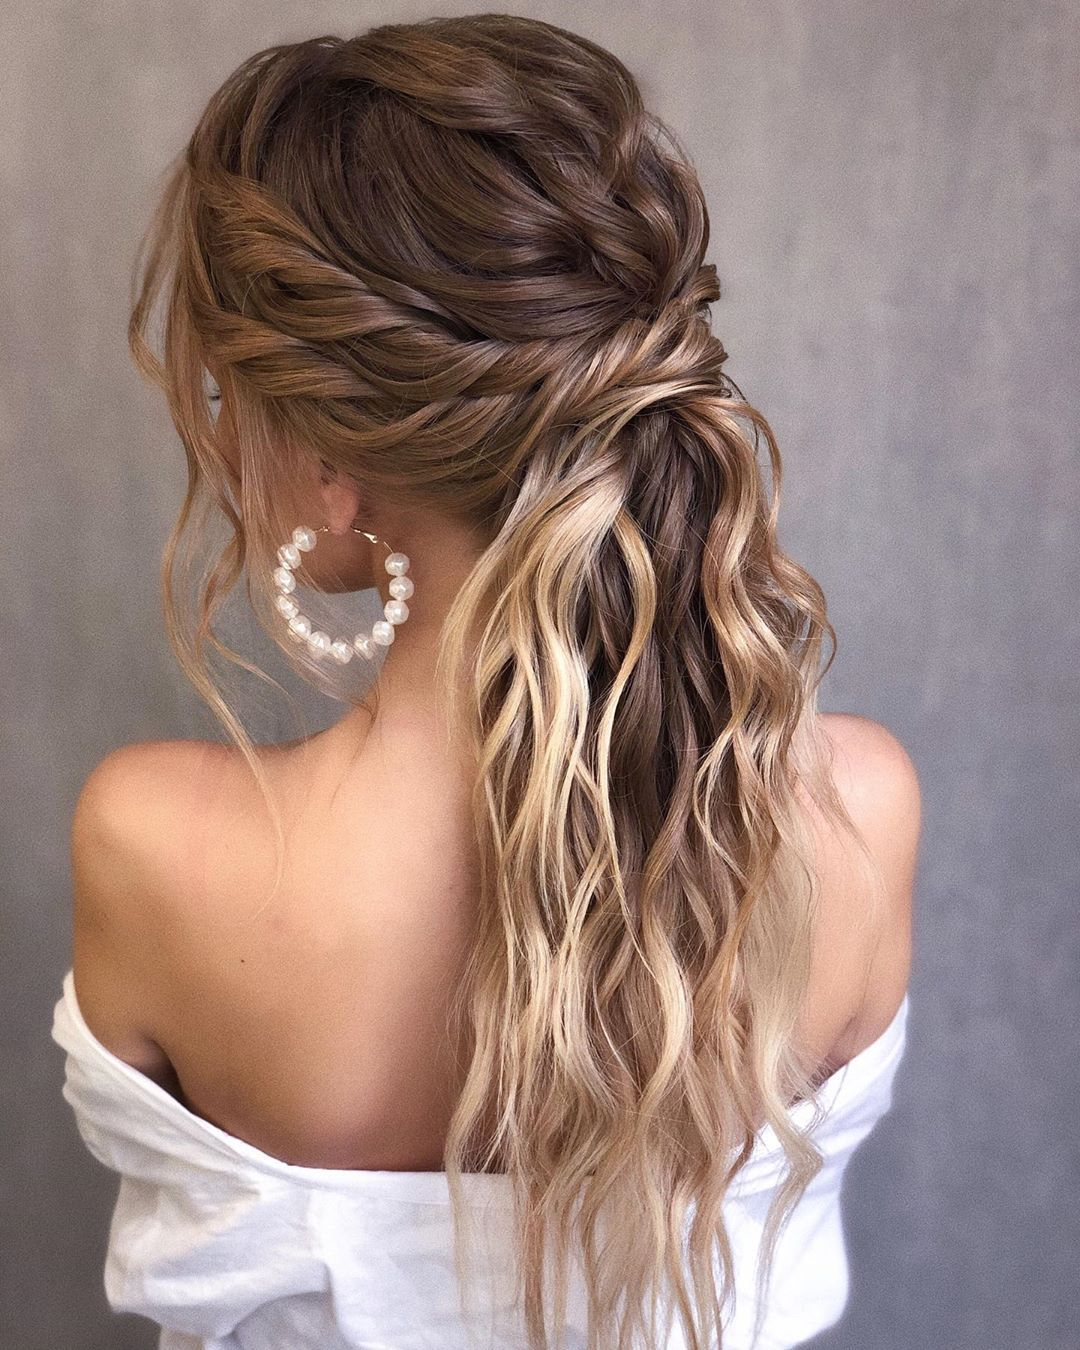 30 Instagram-Worthy Hairstyles To Try In April